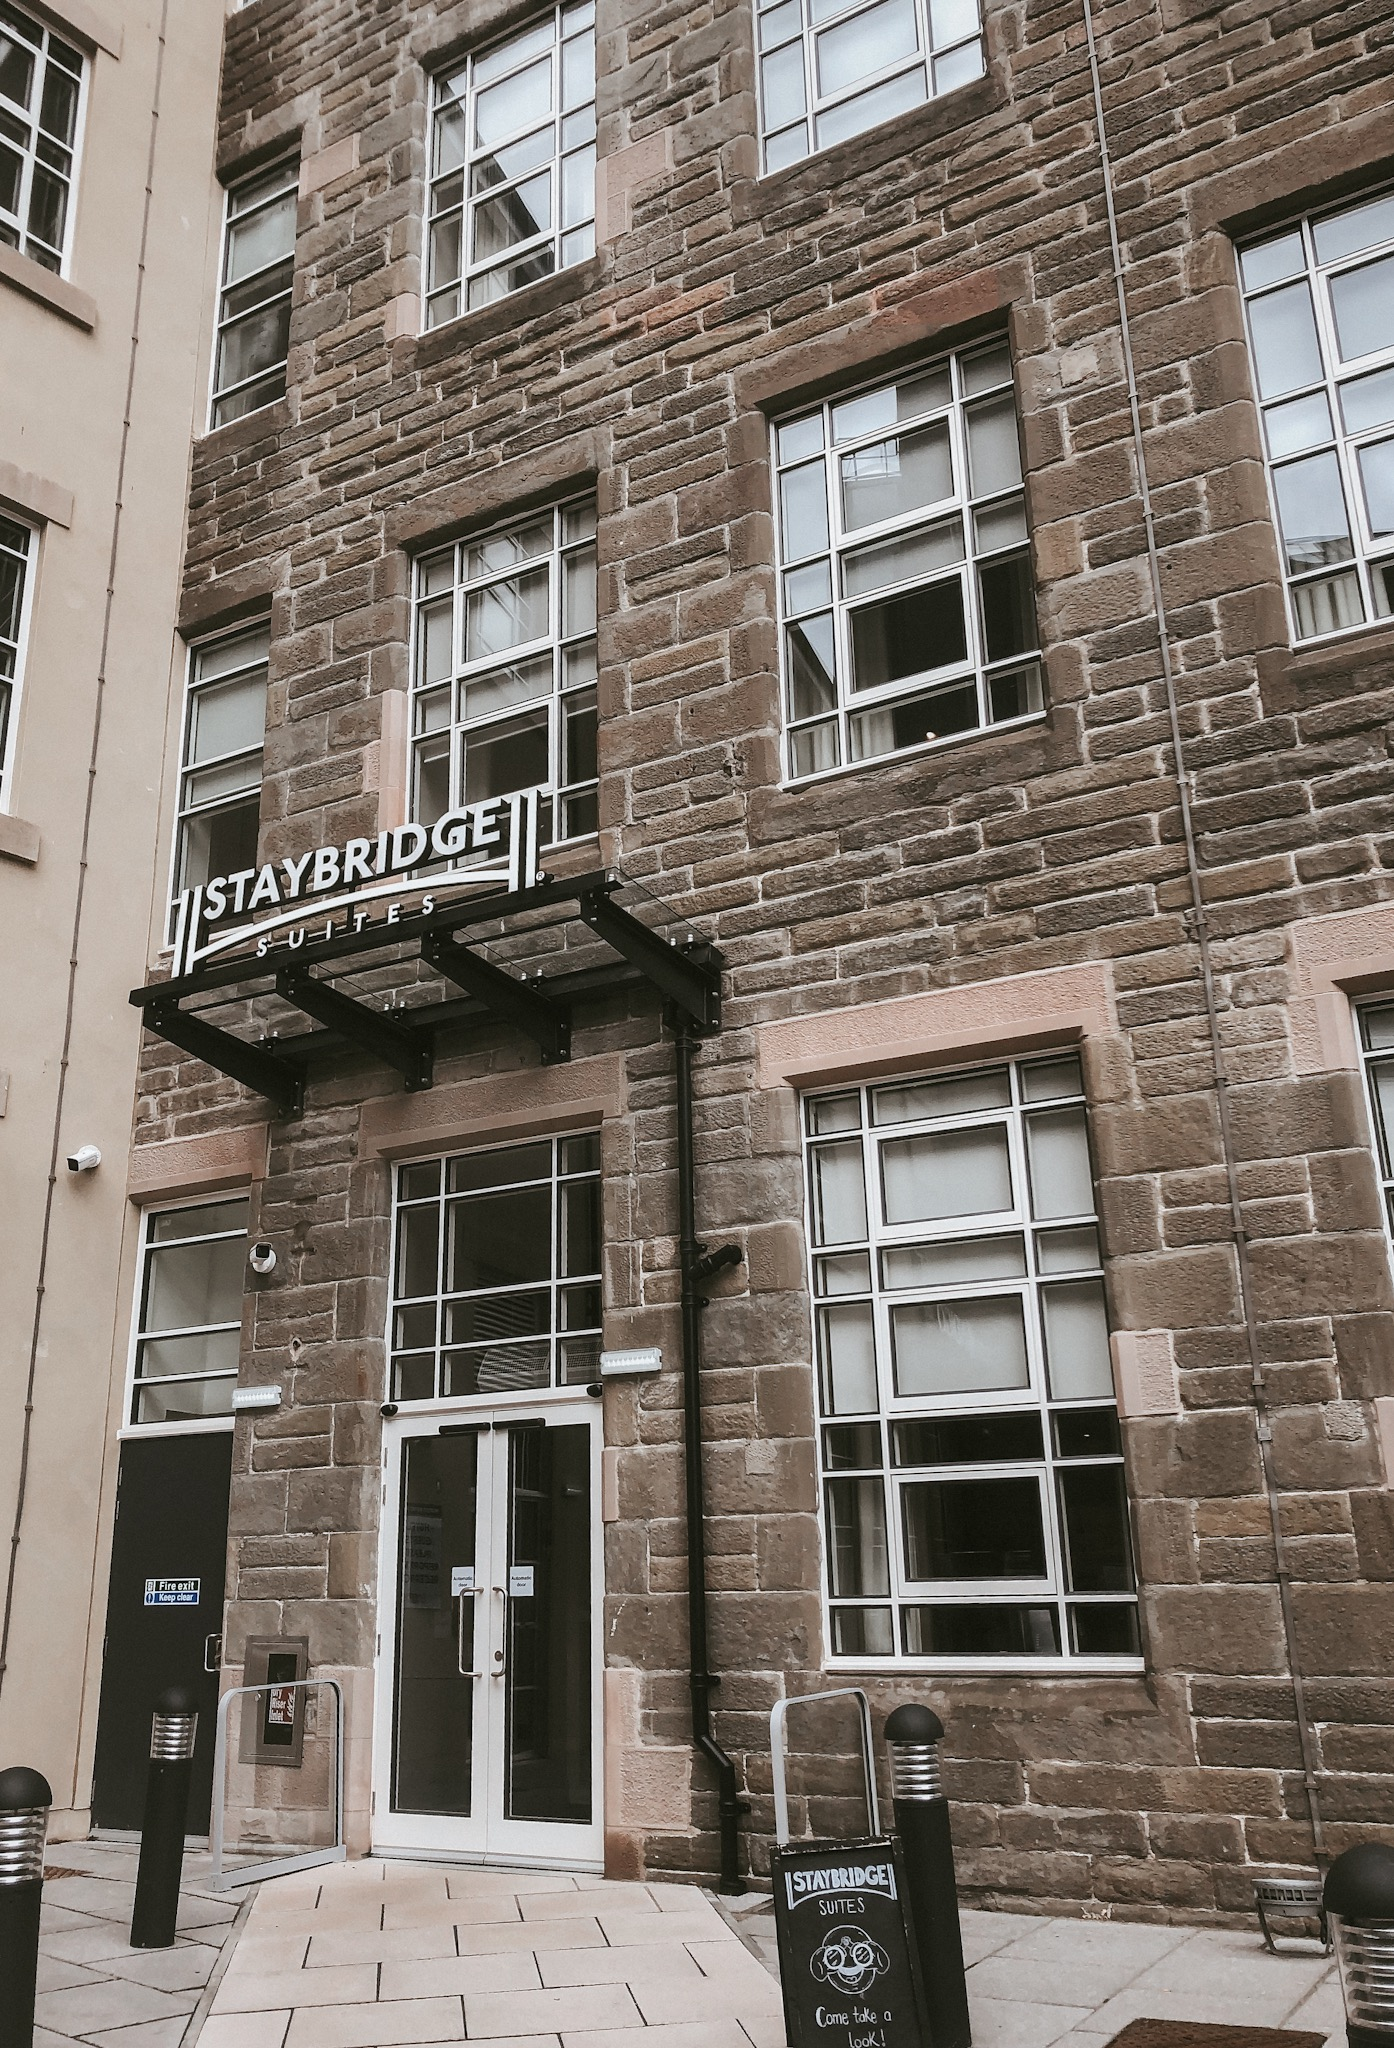 SUMMER STAYCATION AT STAYBRIDGE SUITES DUNDEE